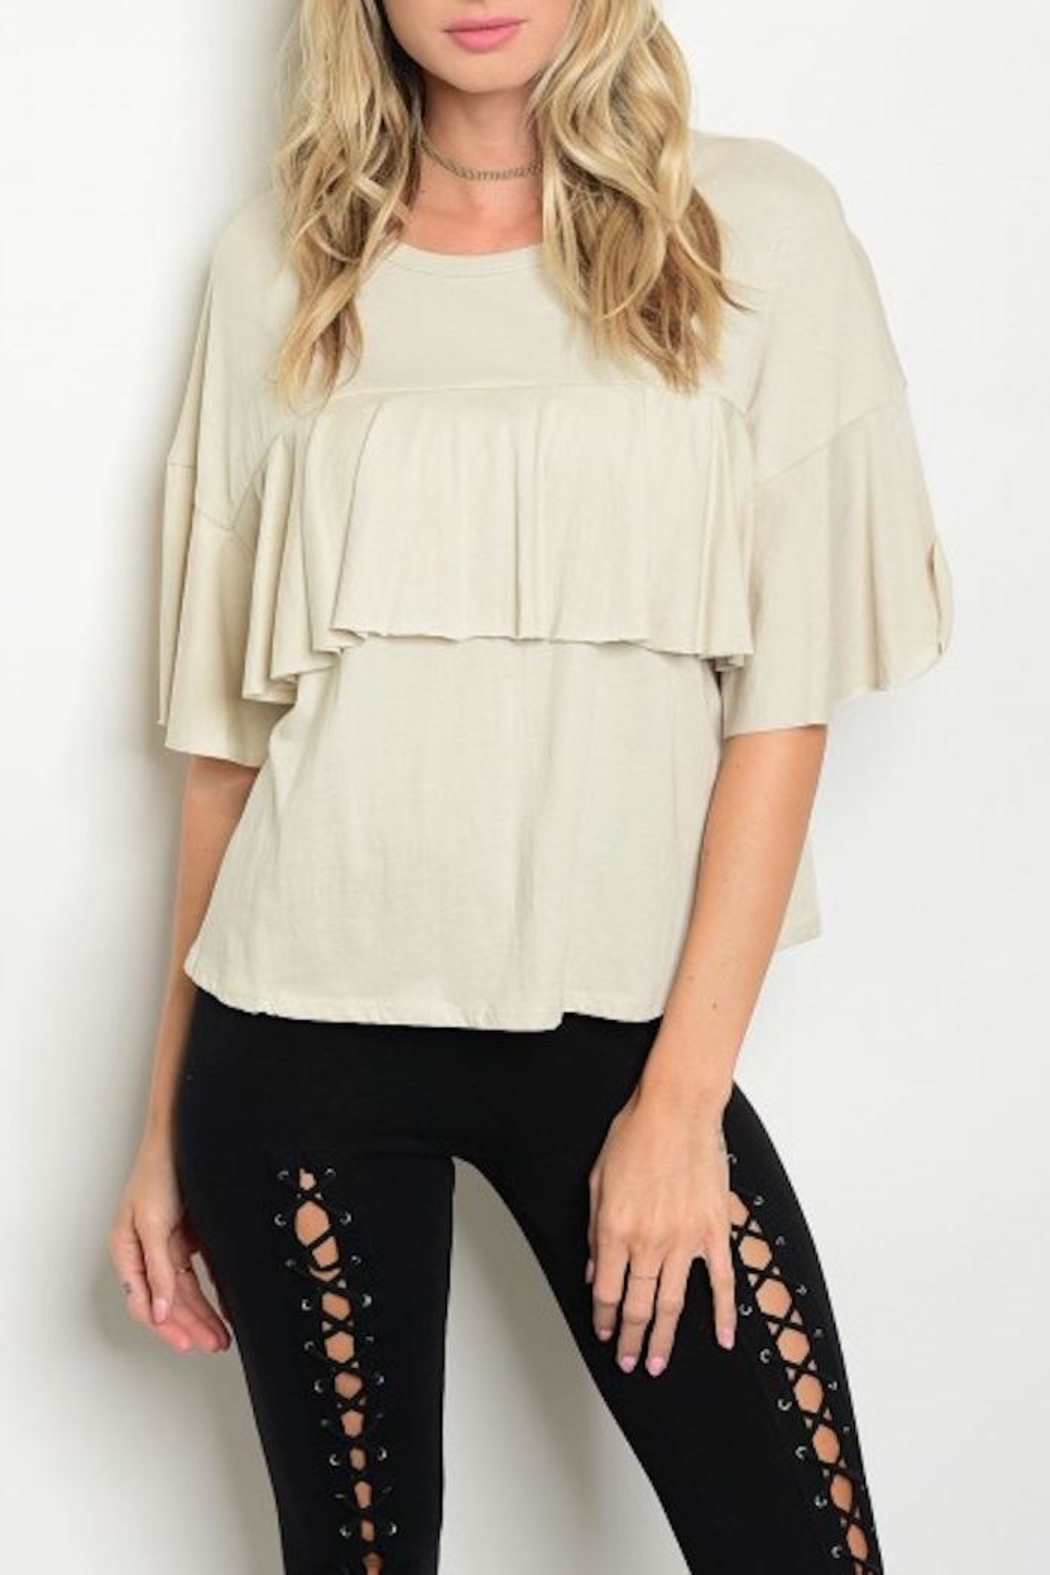 Sweet Claire Ruffle Cropped Tee - Main Image